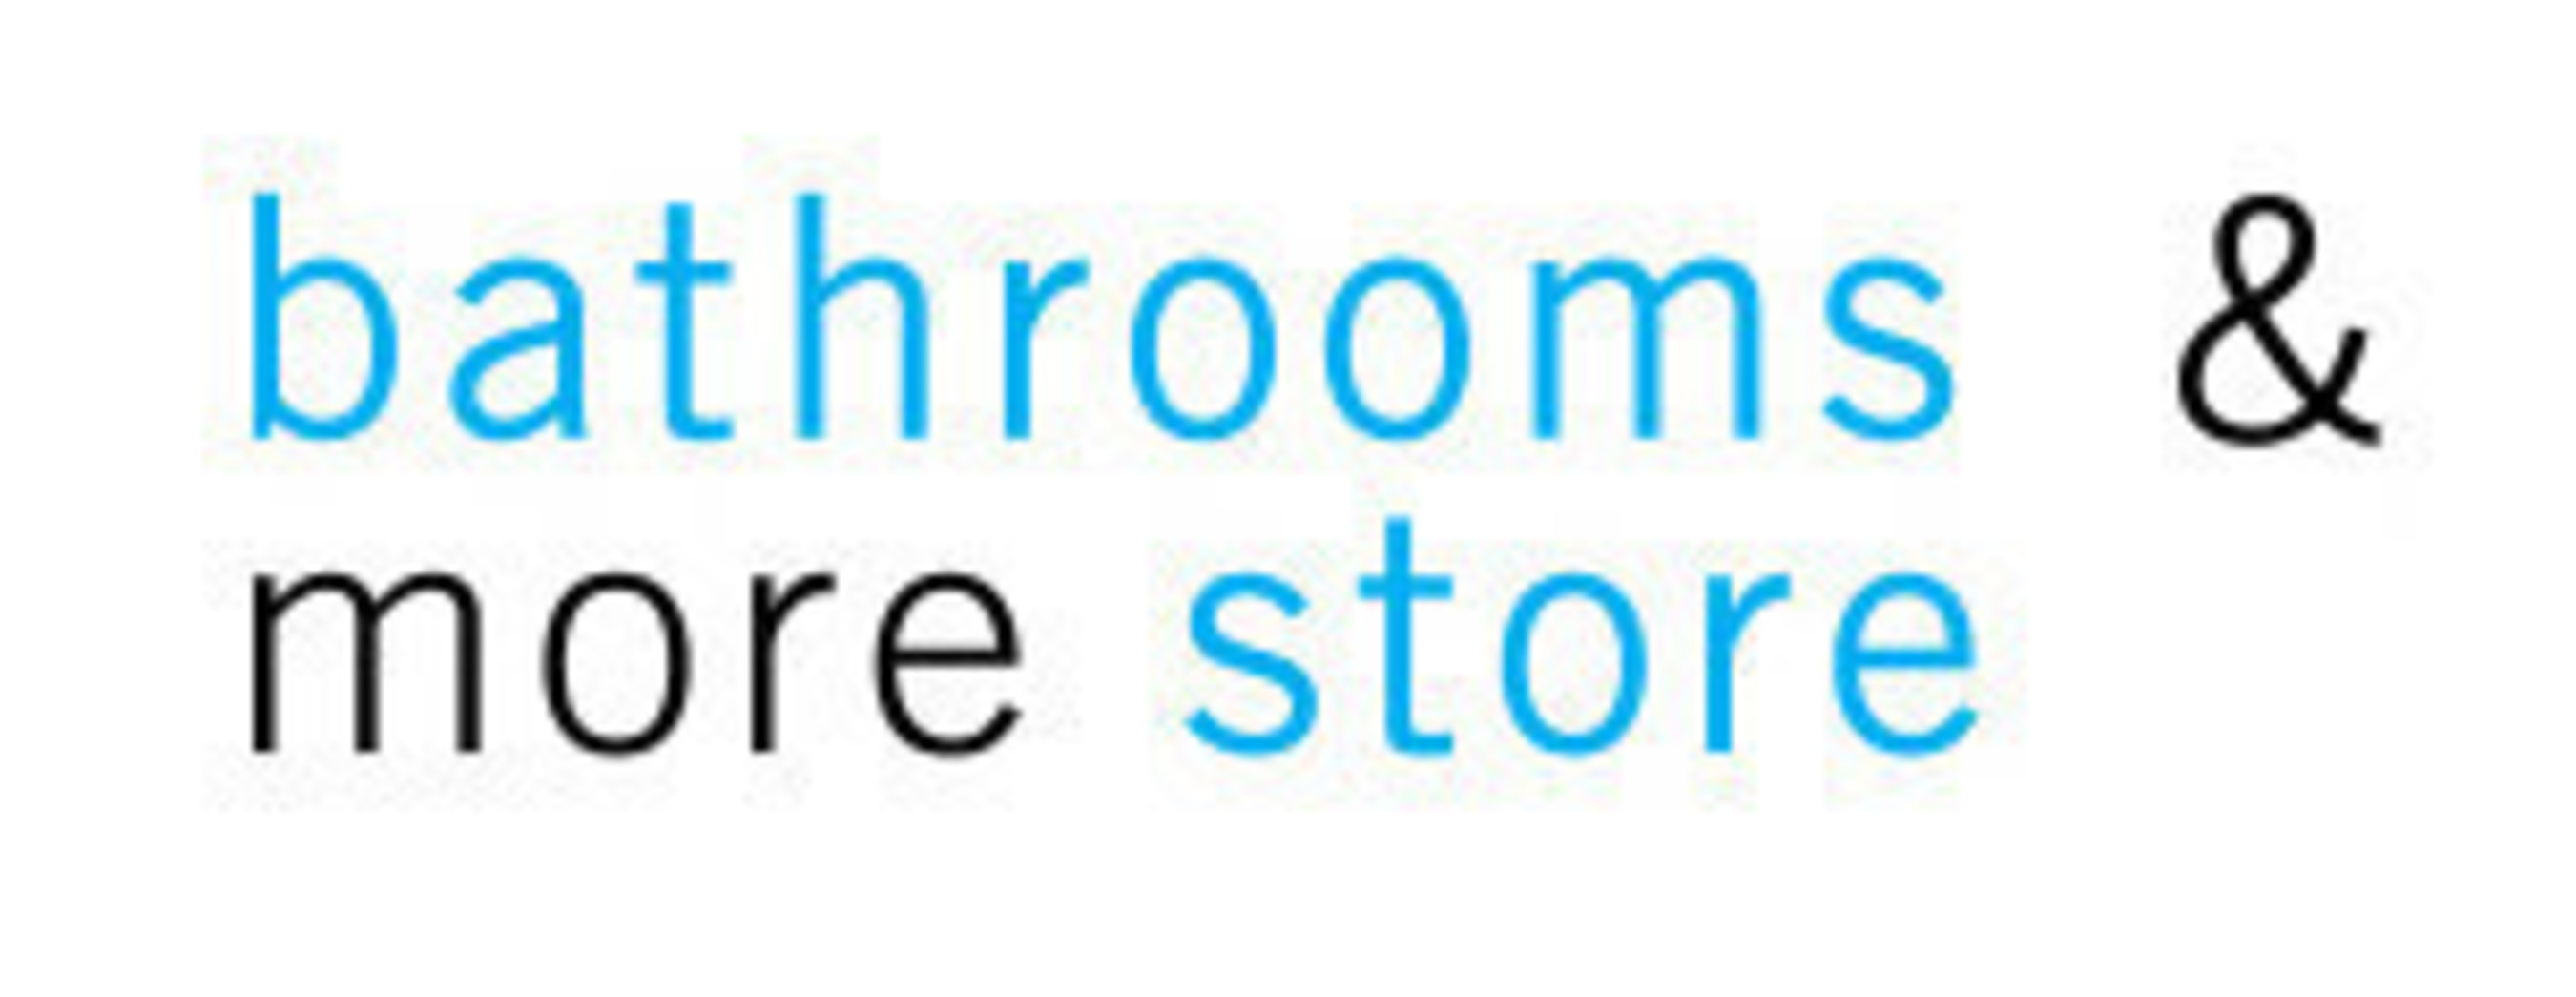 Bathrooms and More Store Announces New 14-Day Money Back Guarantee